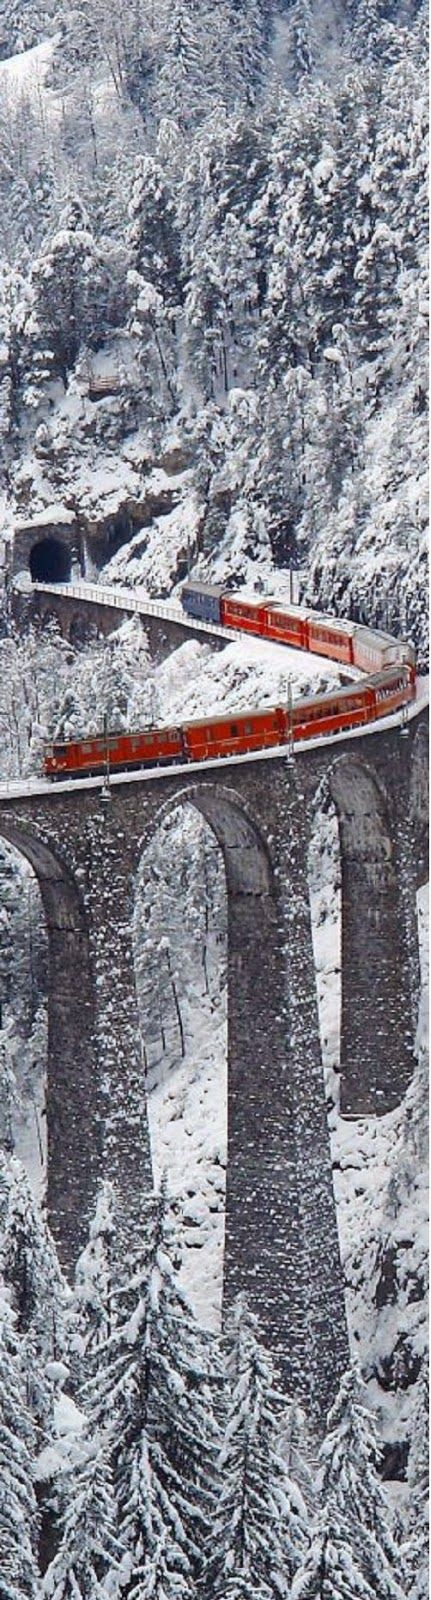 Landwasser Viaduct, Graubünden, Switzerland.